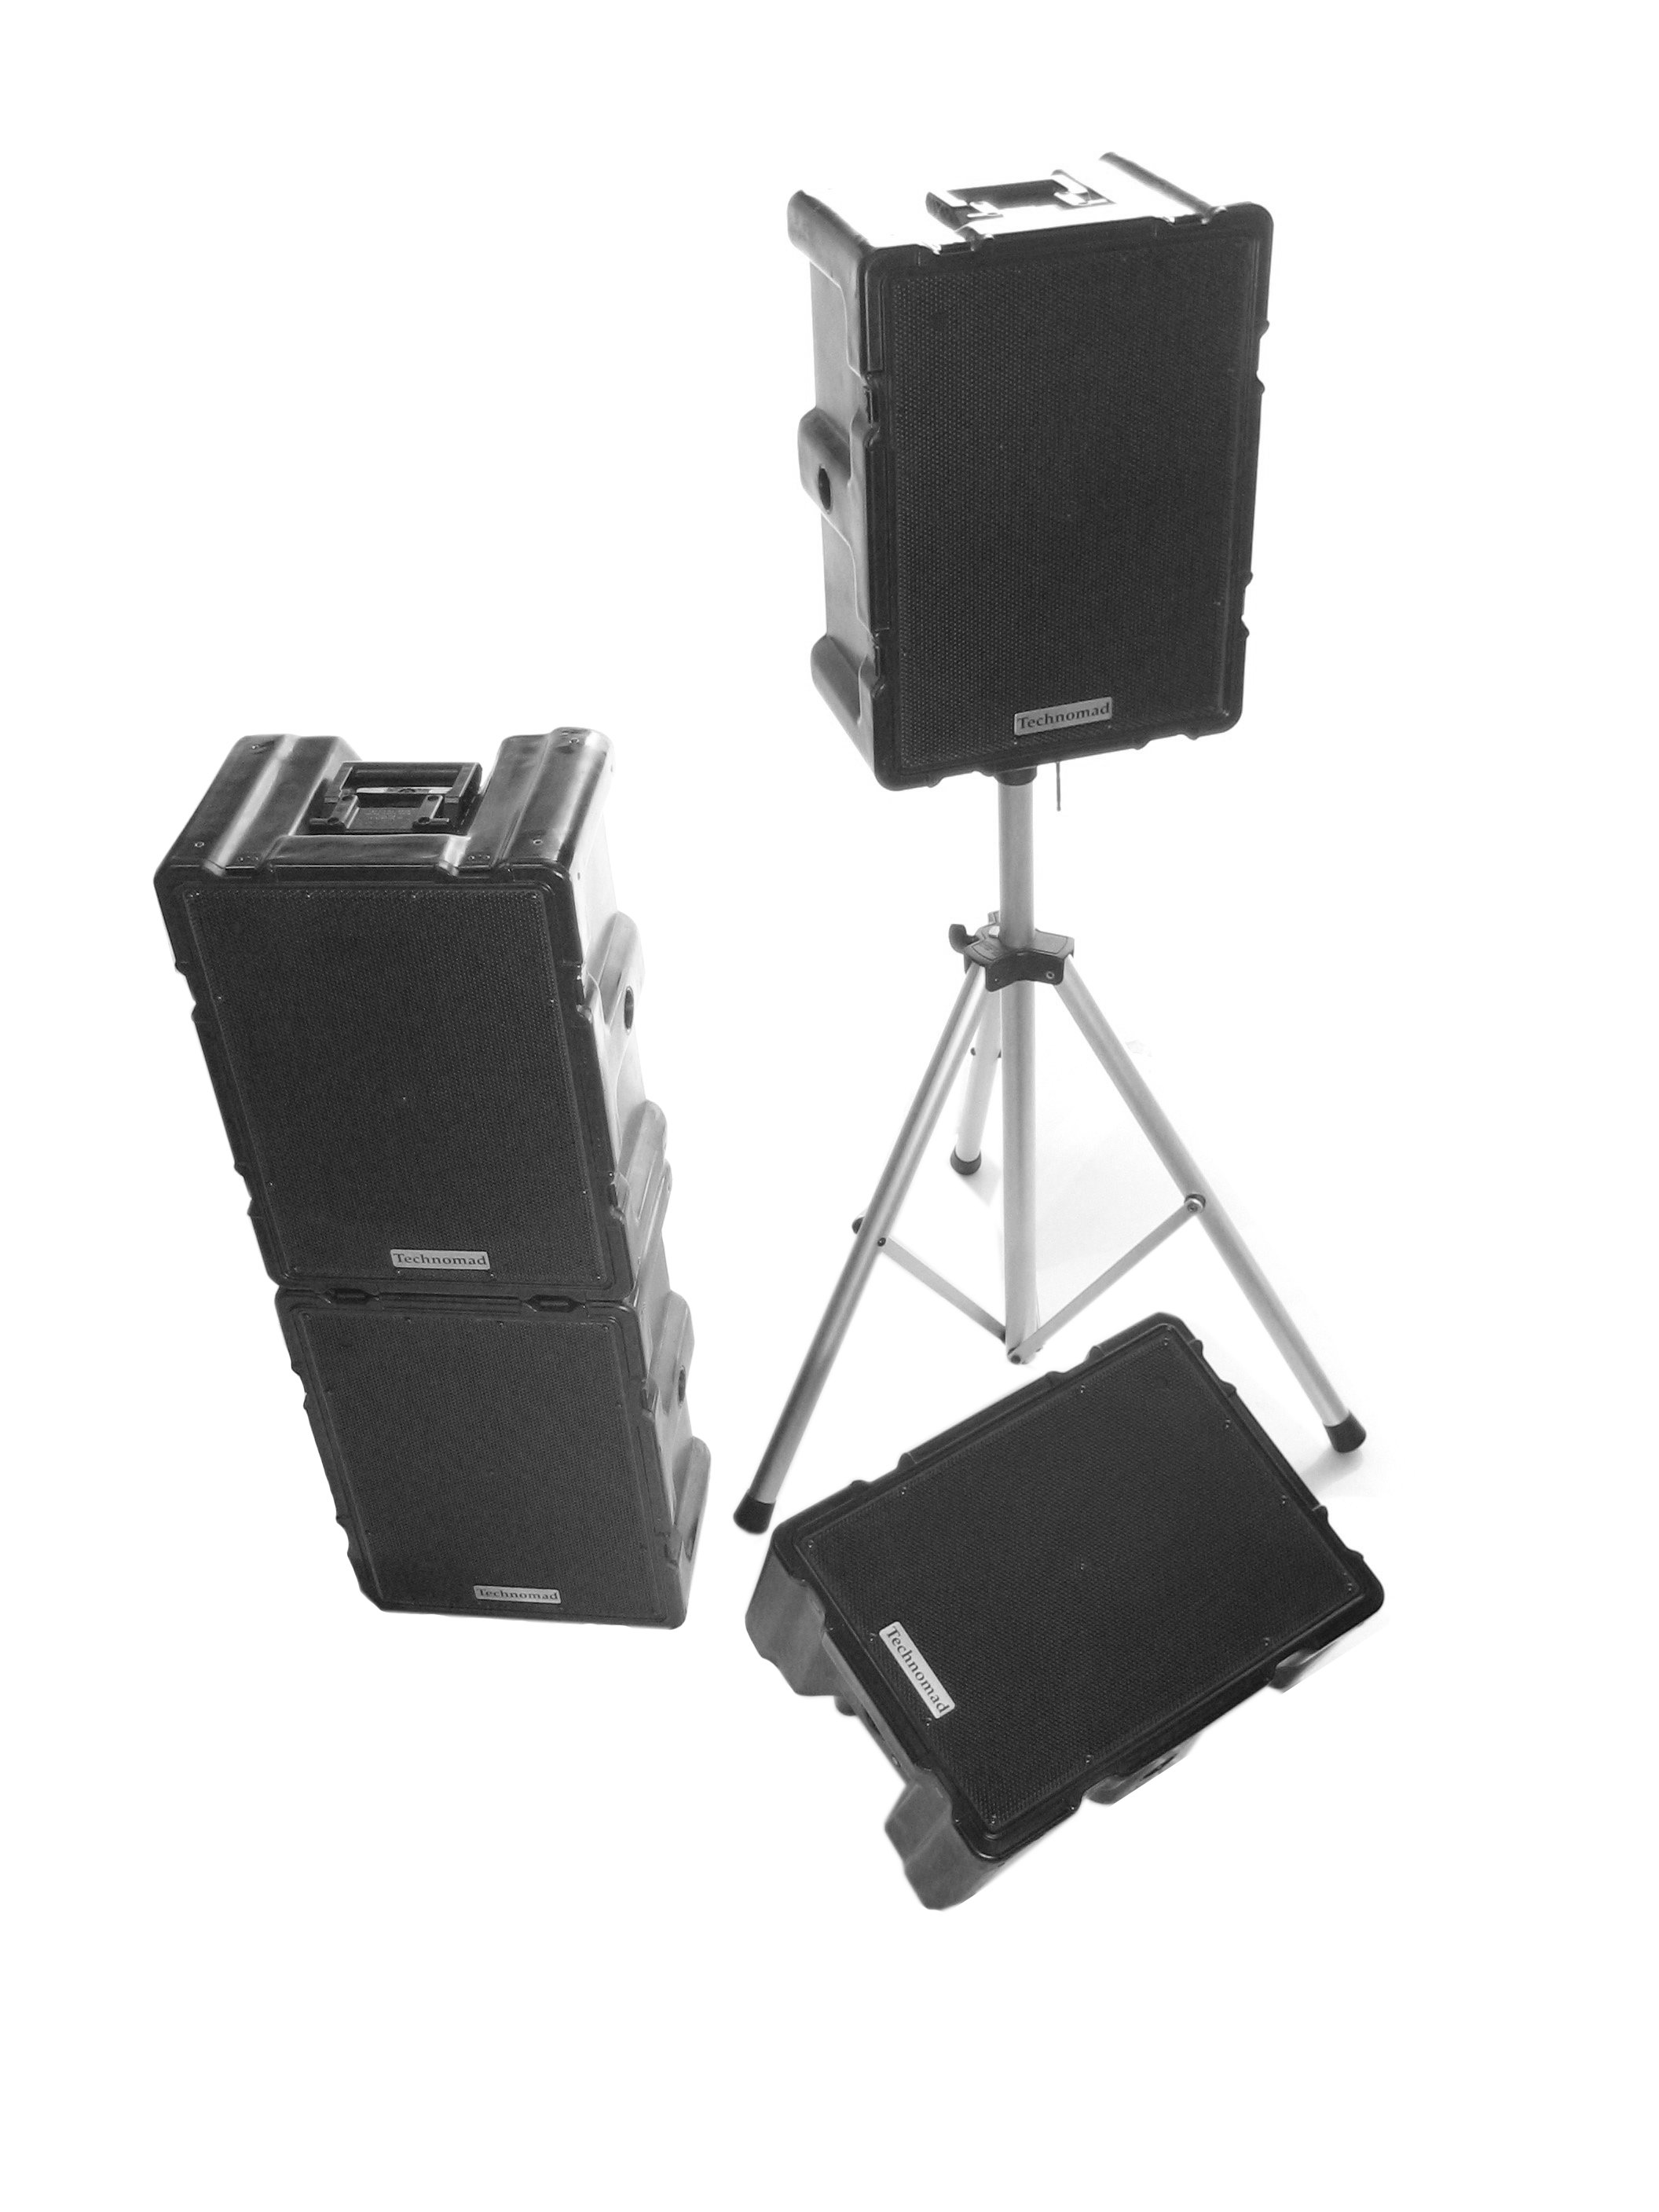 The Technomad Noho C Series of Weatherproof Loudspeakers